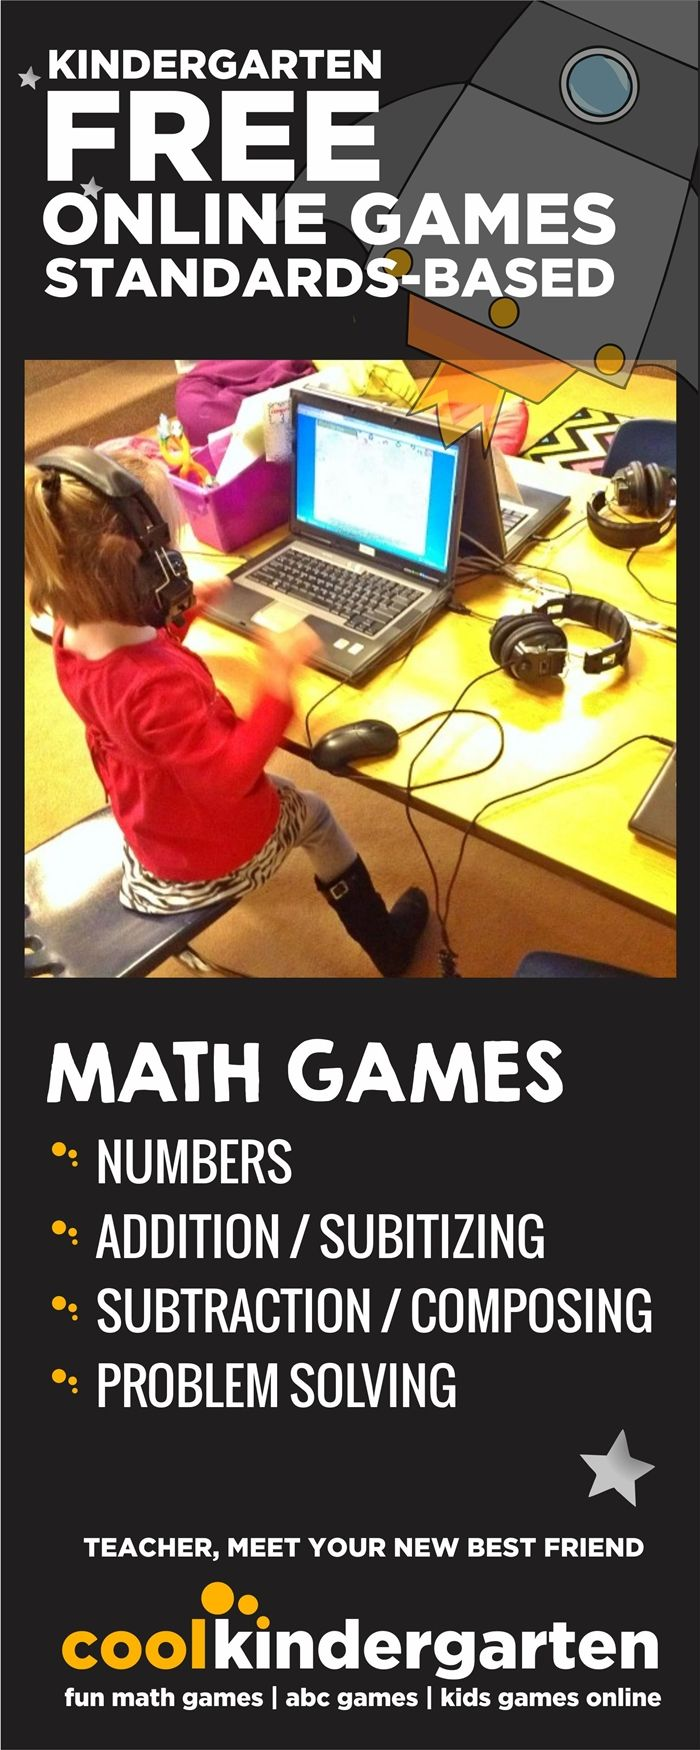 math worksheet : cool math games for kindergarten  free online  technology for  : Cool Math Games For Kindergarten